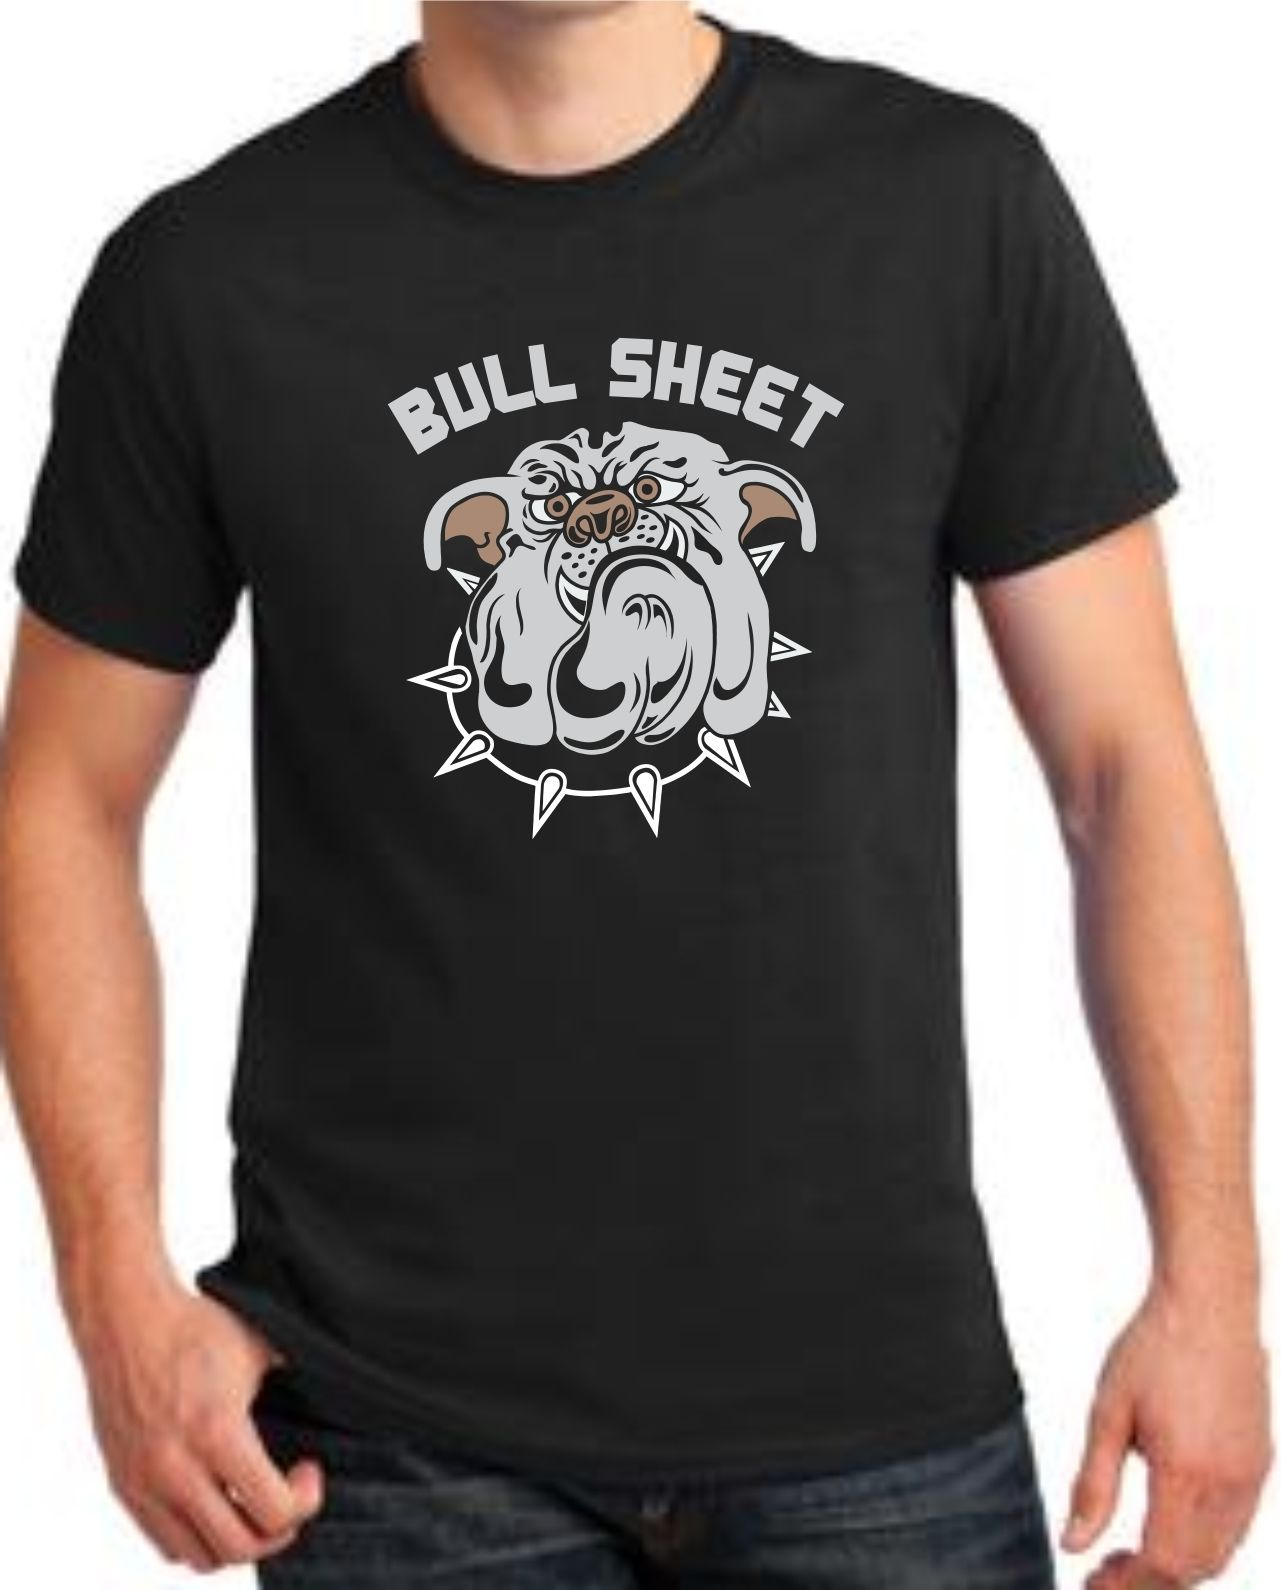 Design t shirt games online - Online T Shirts Design O Neck Short Bull Dog Bull Sheet Graphic Funny Mens T Shirt